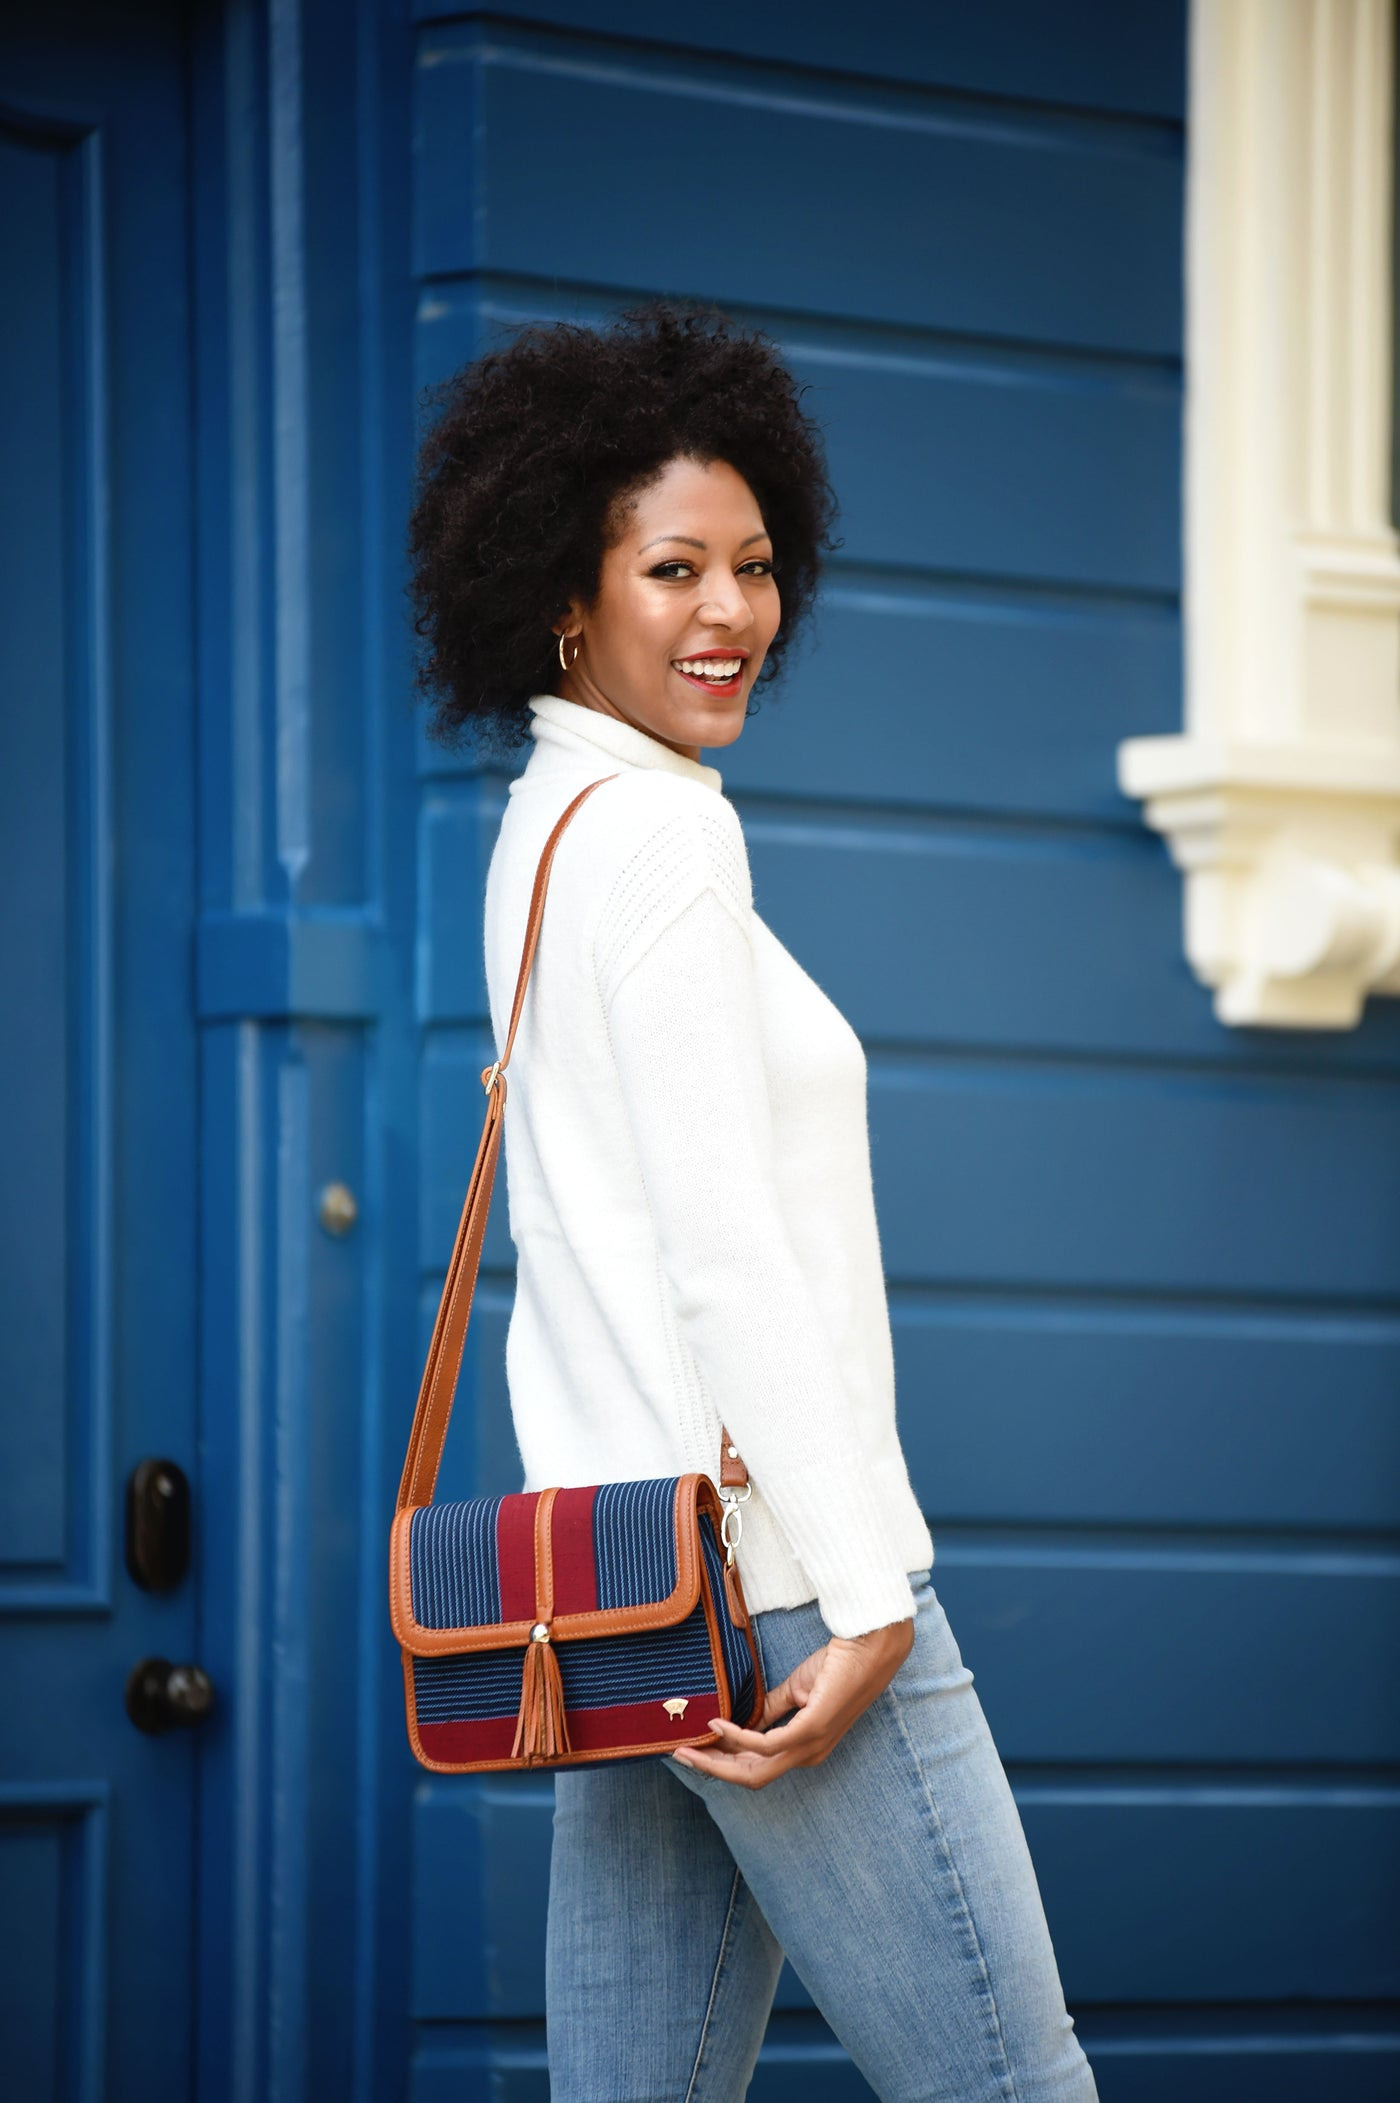 African-American model smiling at the camera, carrying an Olori Tola Maiden Crossbody bag in brown